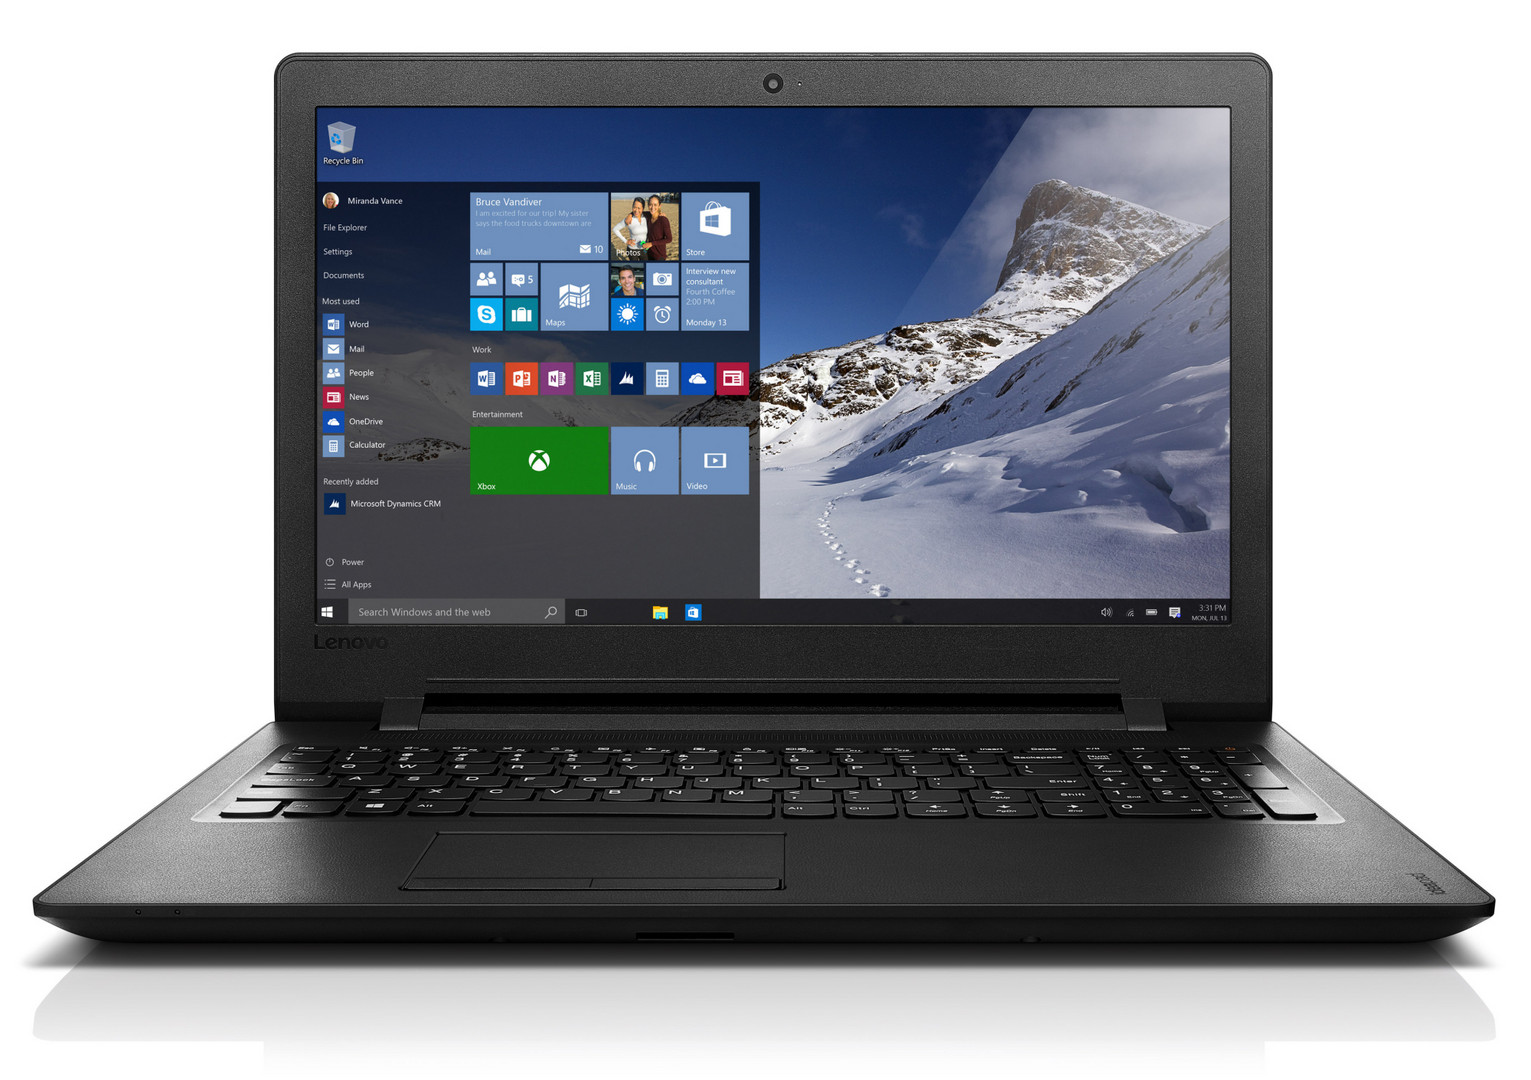 Lenovo Ideapad 110 15acl A8 7410 Hd Laptop Review